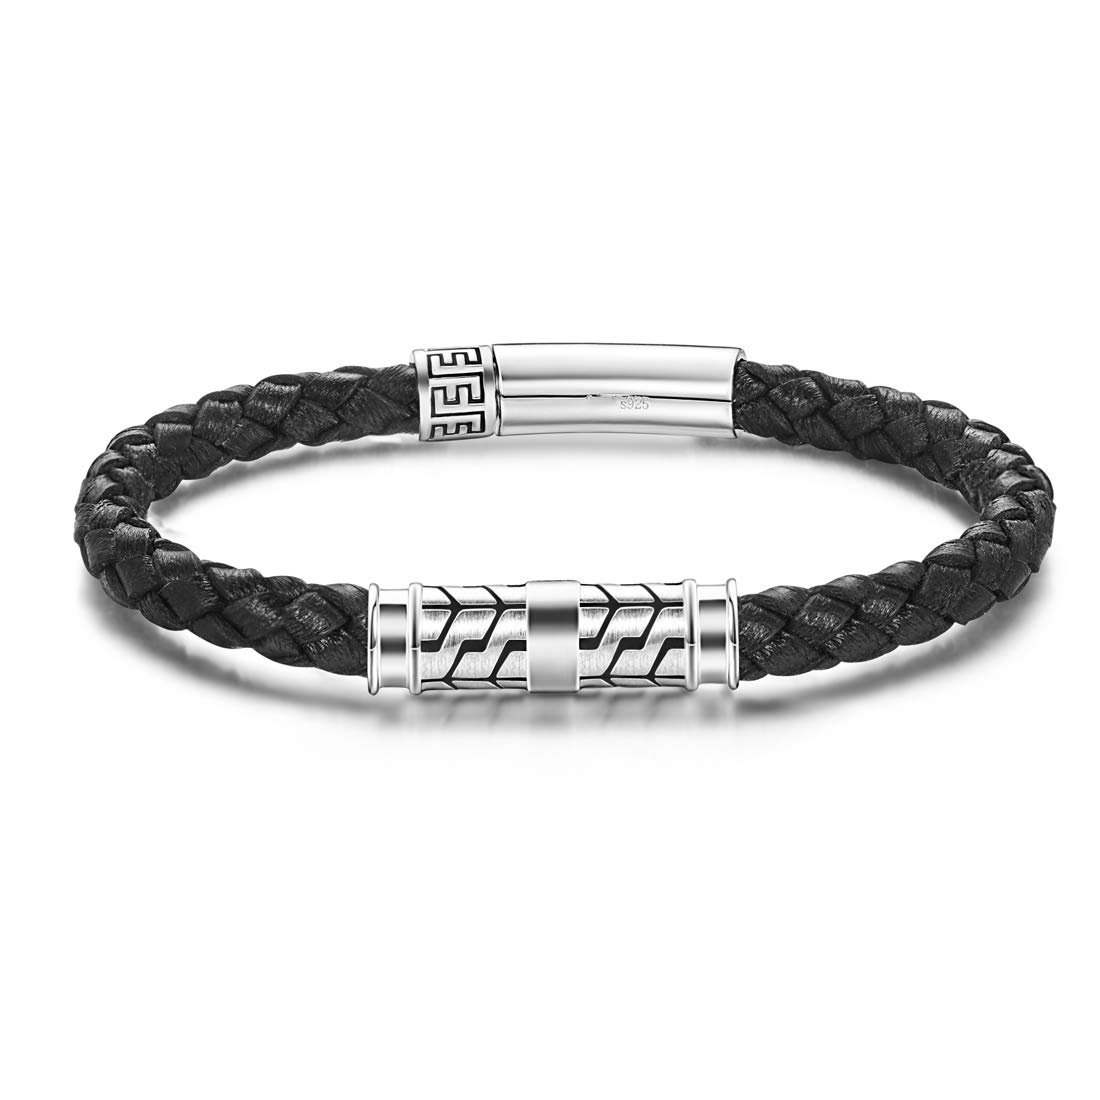 Carleen Destination 925 Sterling Silver Genuine Mens Leather Bracelet Braided Rope Energy Charm Magnetic Clasp, 8.3'' Black